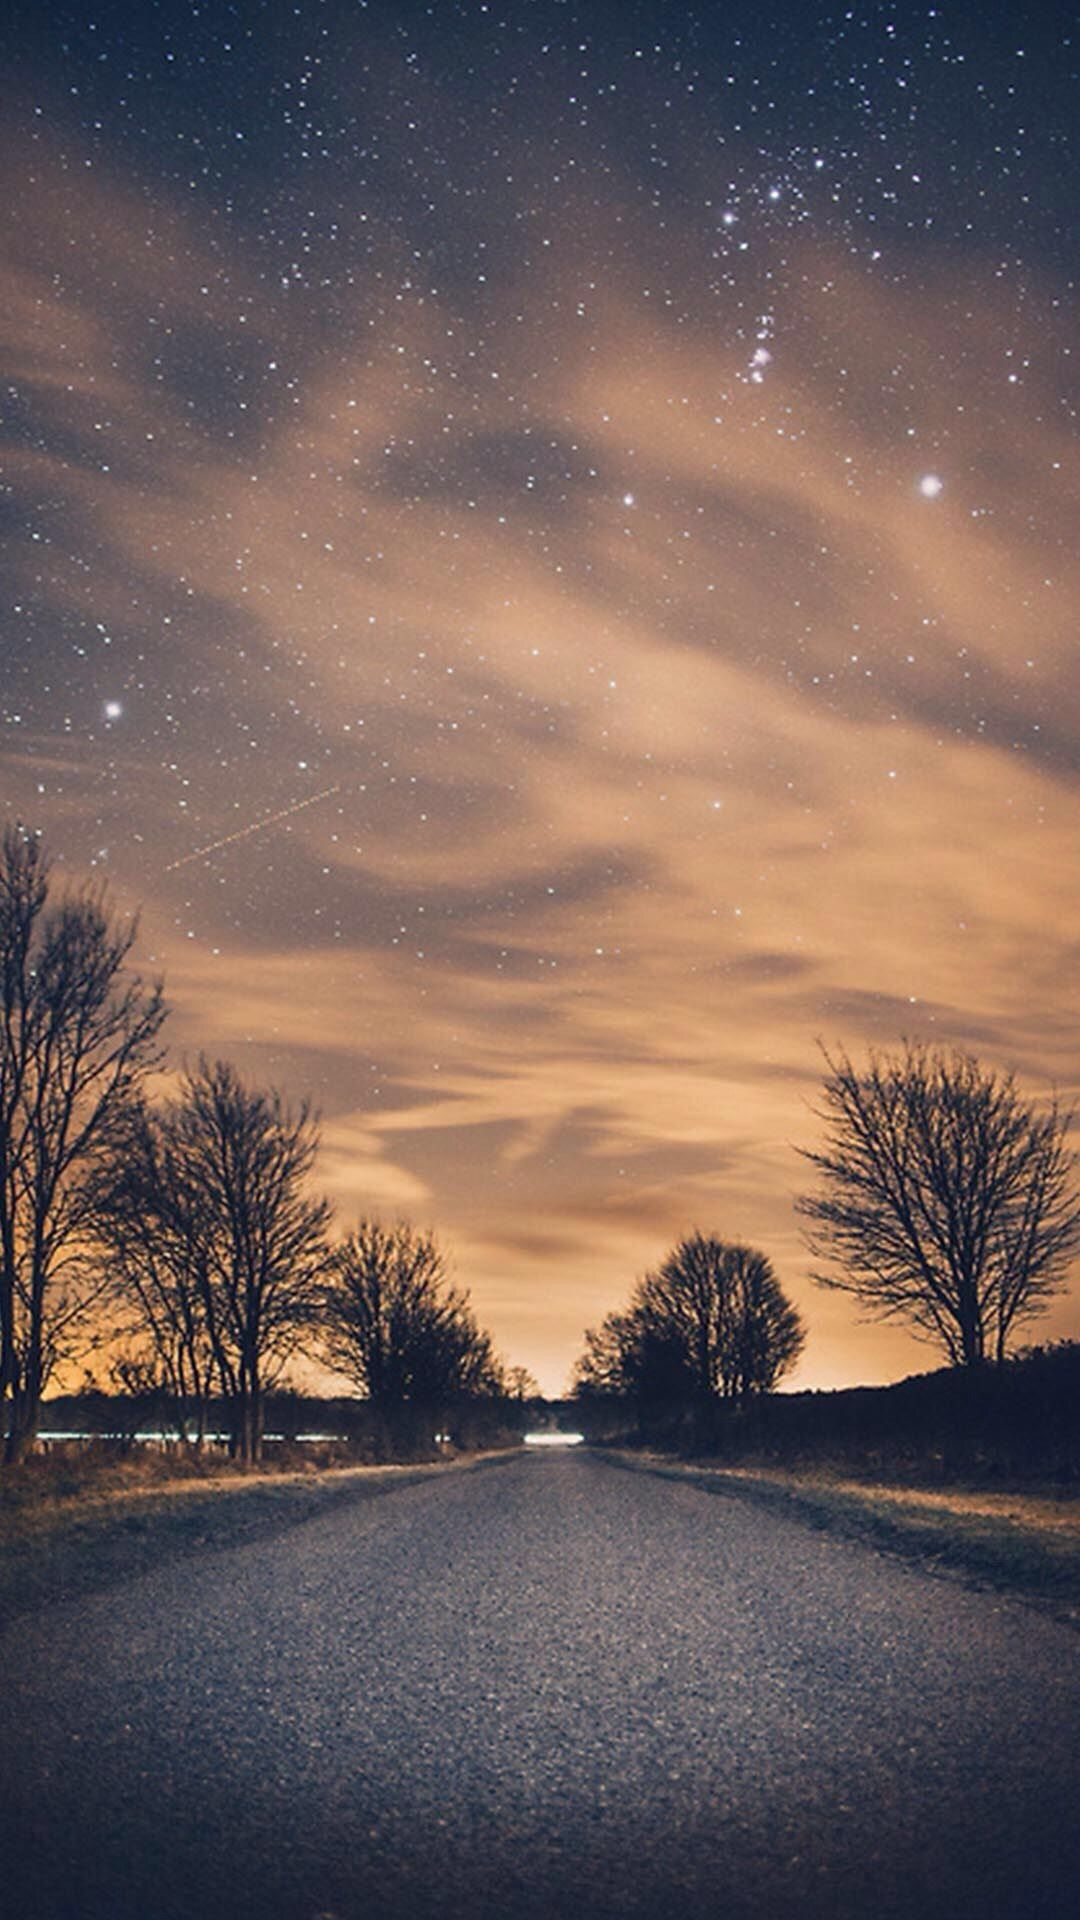 Nature Night Shiny Road Endless Tree Roadside Iphone 6 Wallpaper Nature Iphone Wallpaper New Nature Wallpaper Nature Wallpaper